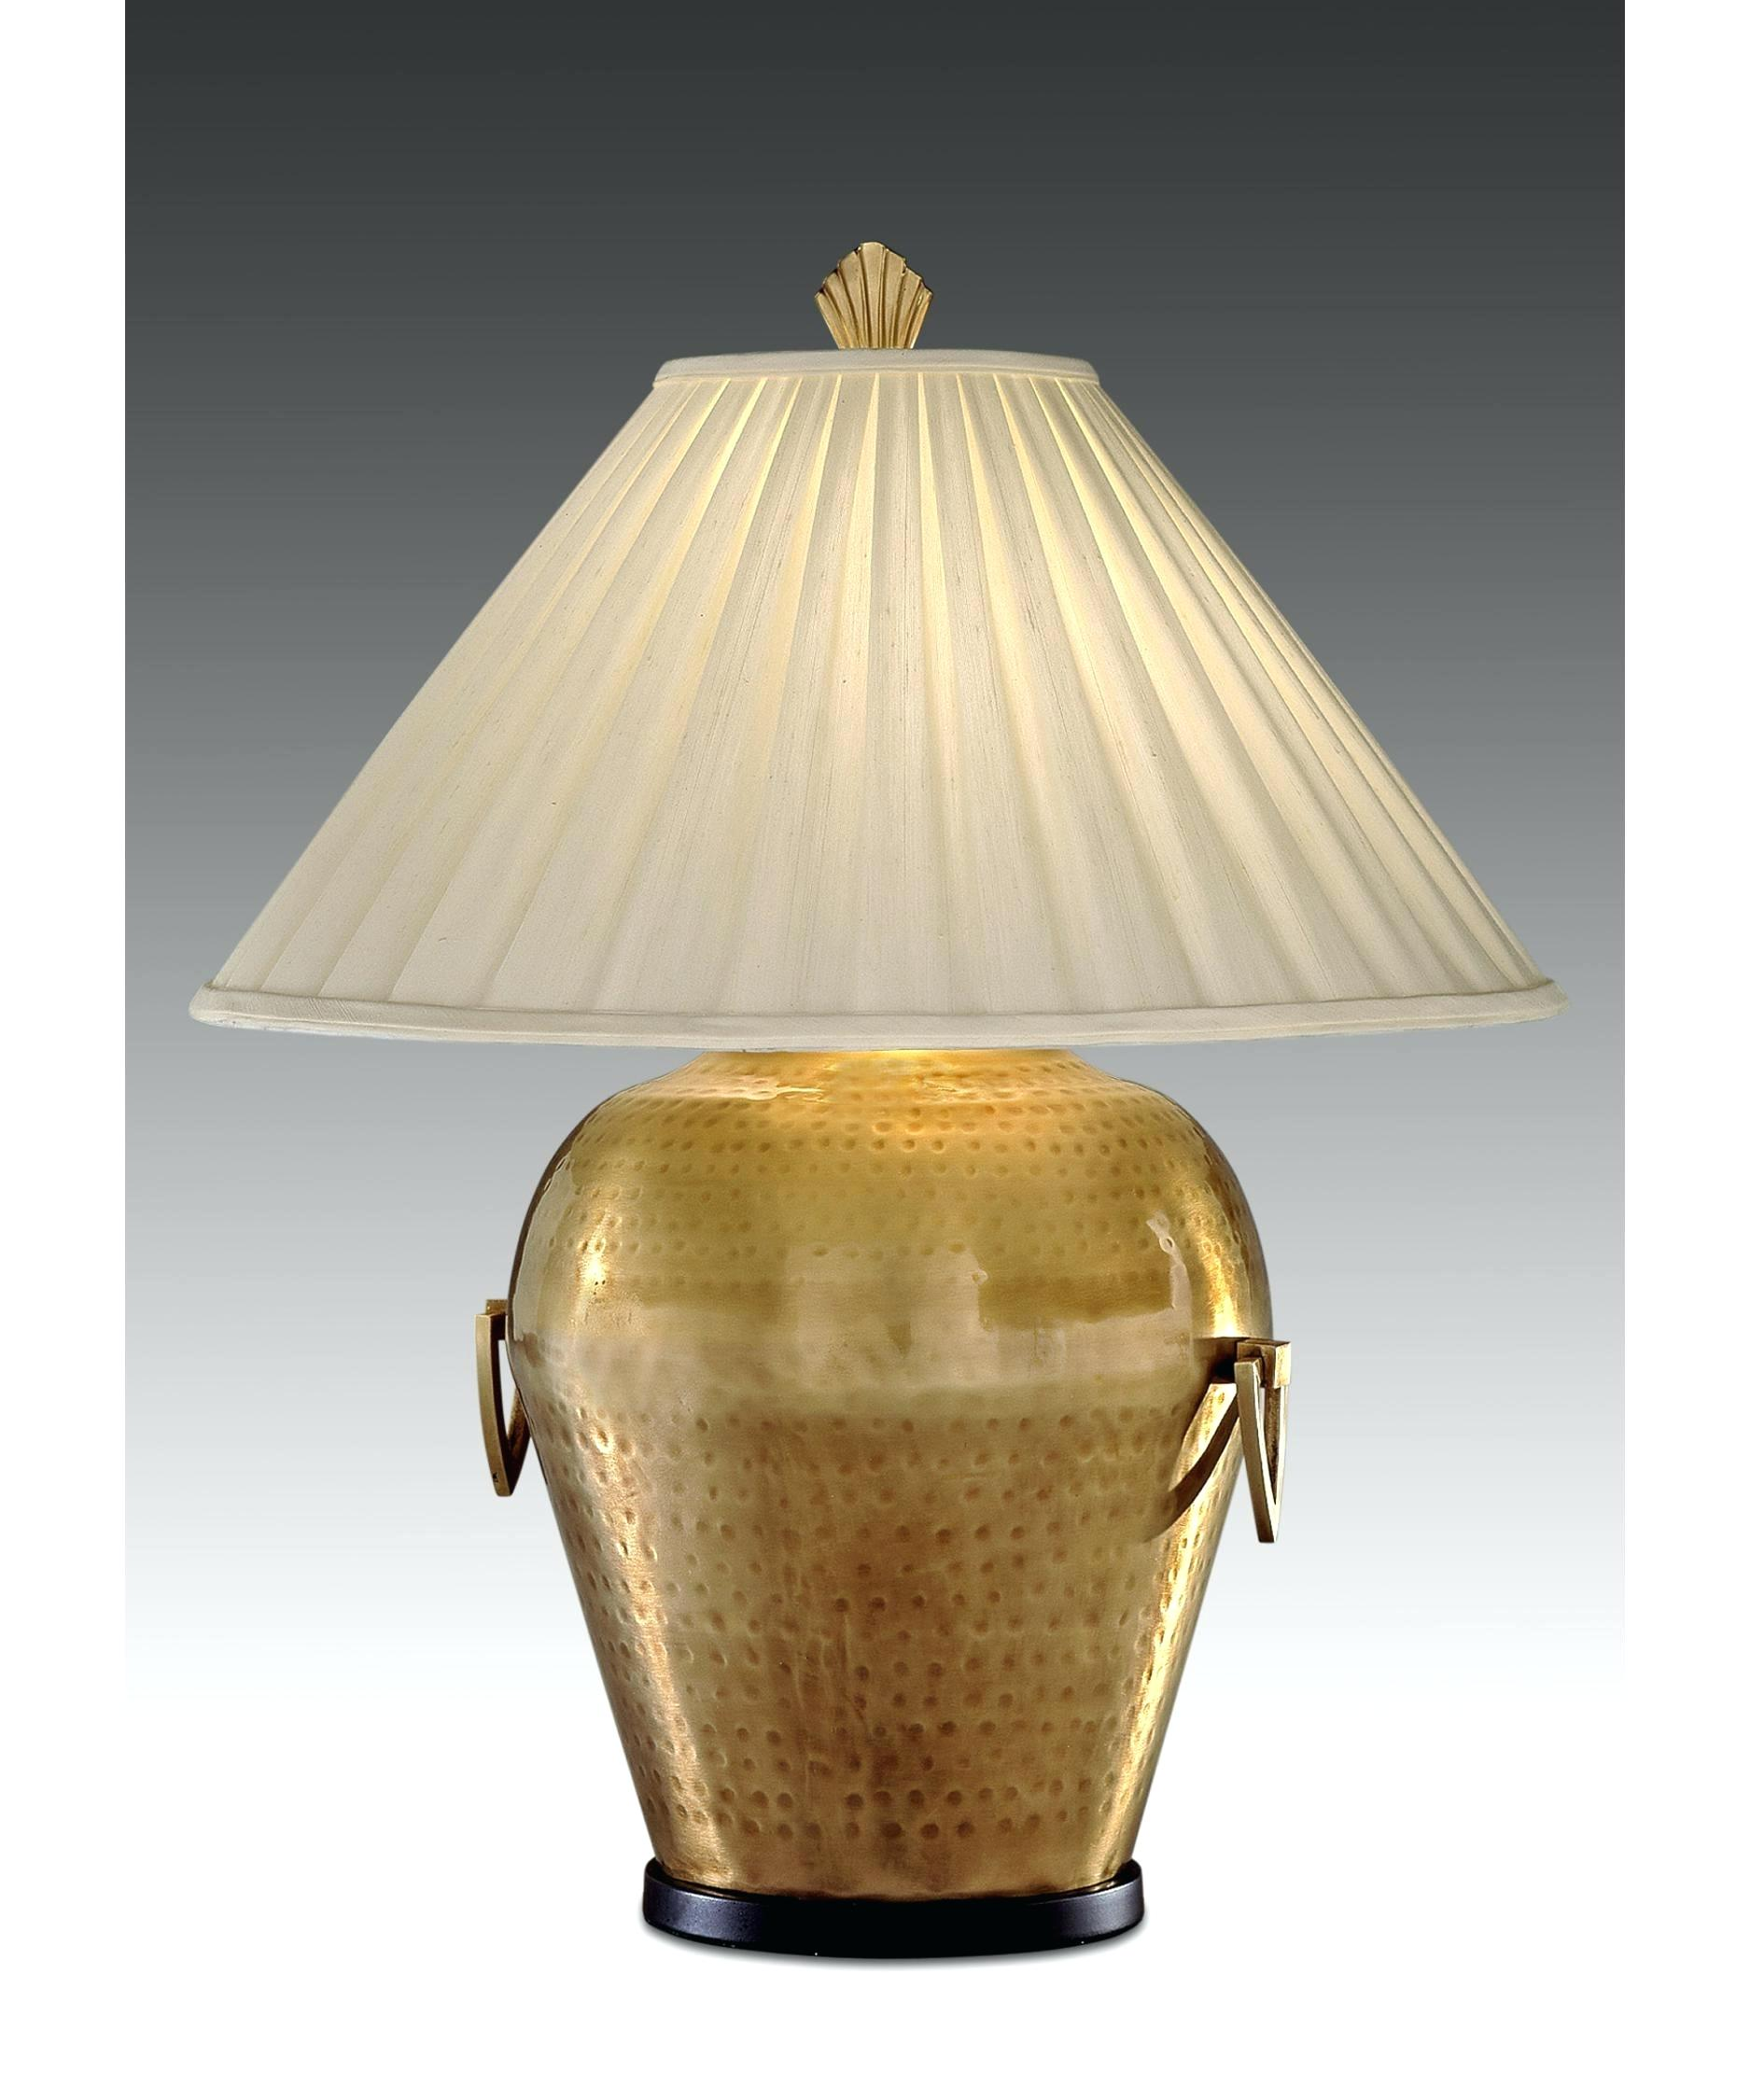 lamp antique brass table lamps swan shade with flowers lighting rustic small accent for attractive interior decoration your glass electric vintage reading bedside lights way cut